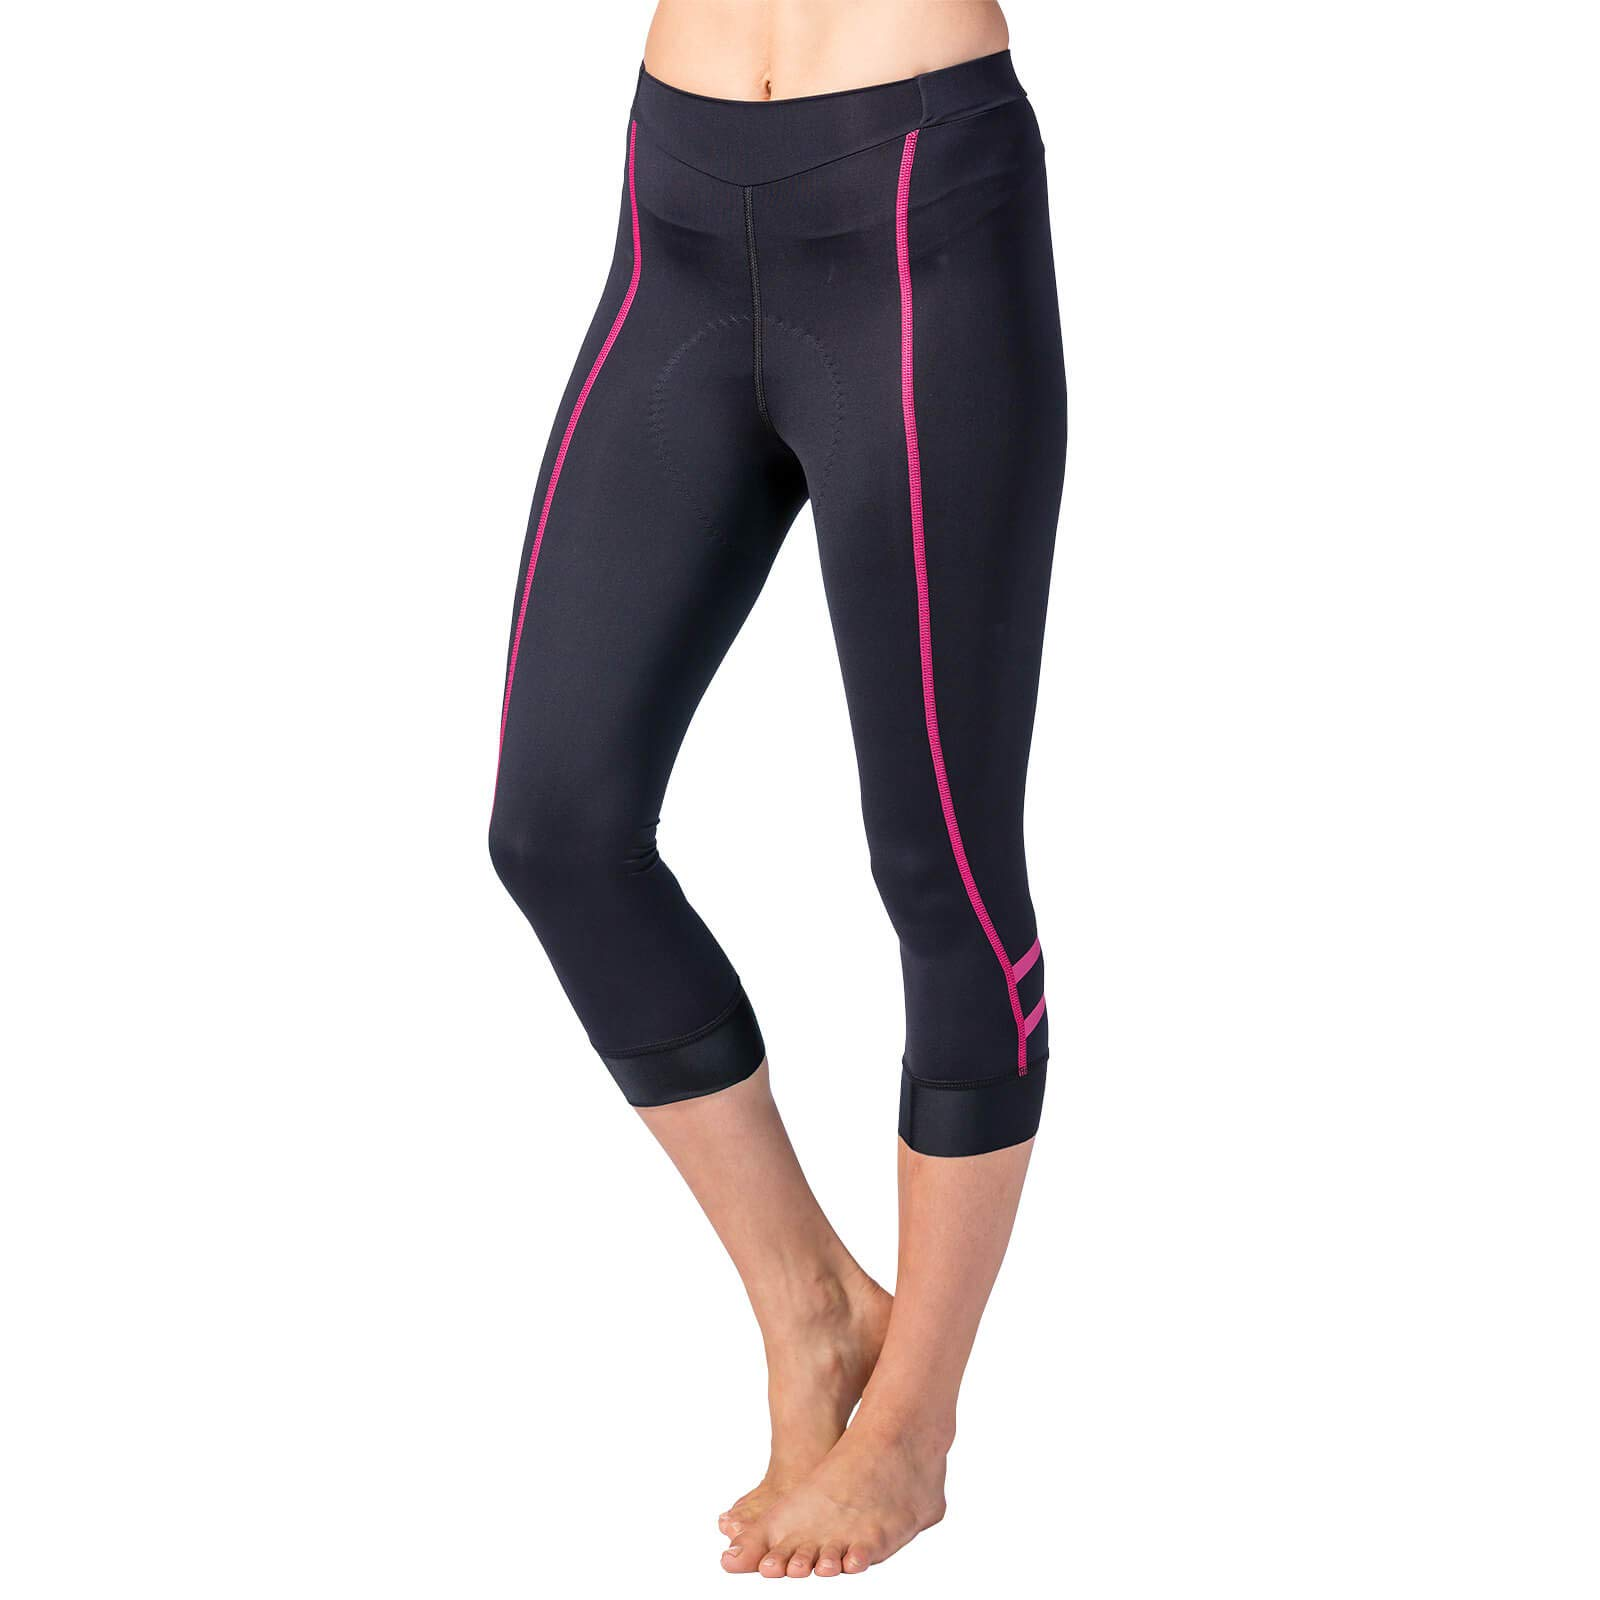 Terry Women's Cycling Bella Prima Knicker Best-in-Class Bicycling Performance Bottom That Extends Below The Knee – Black/Pink – Small